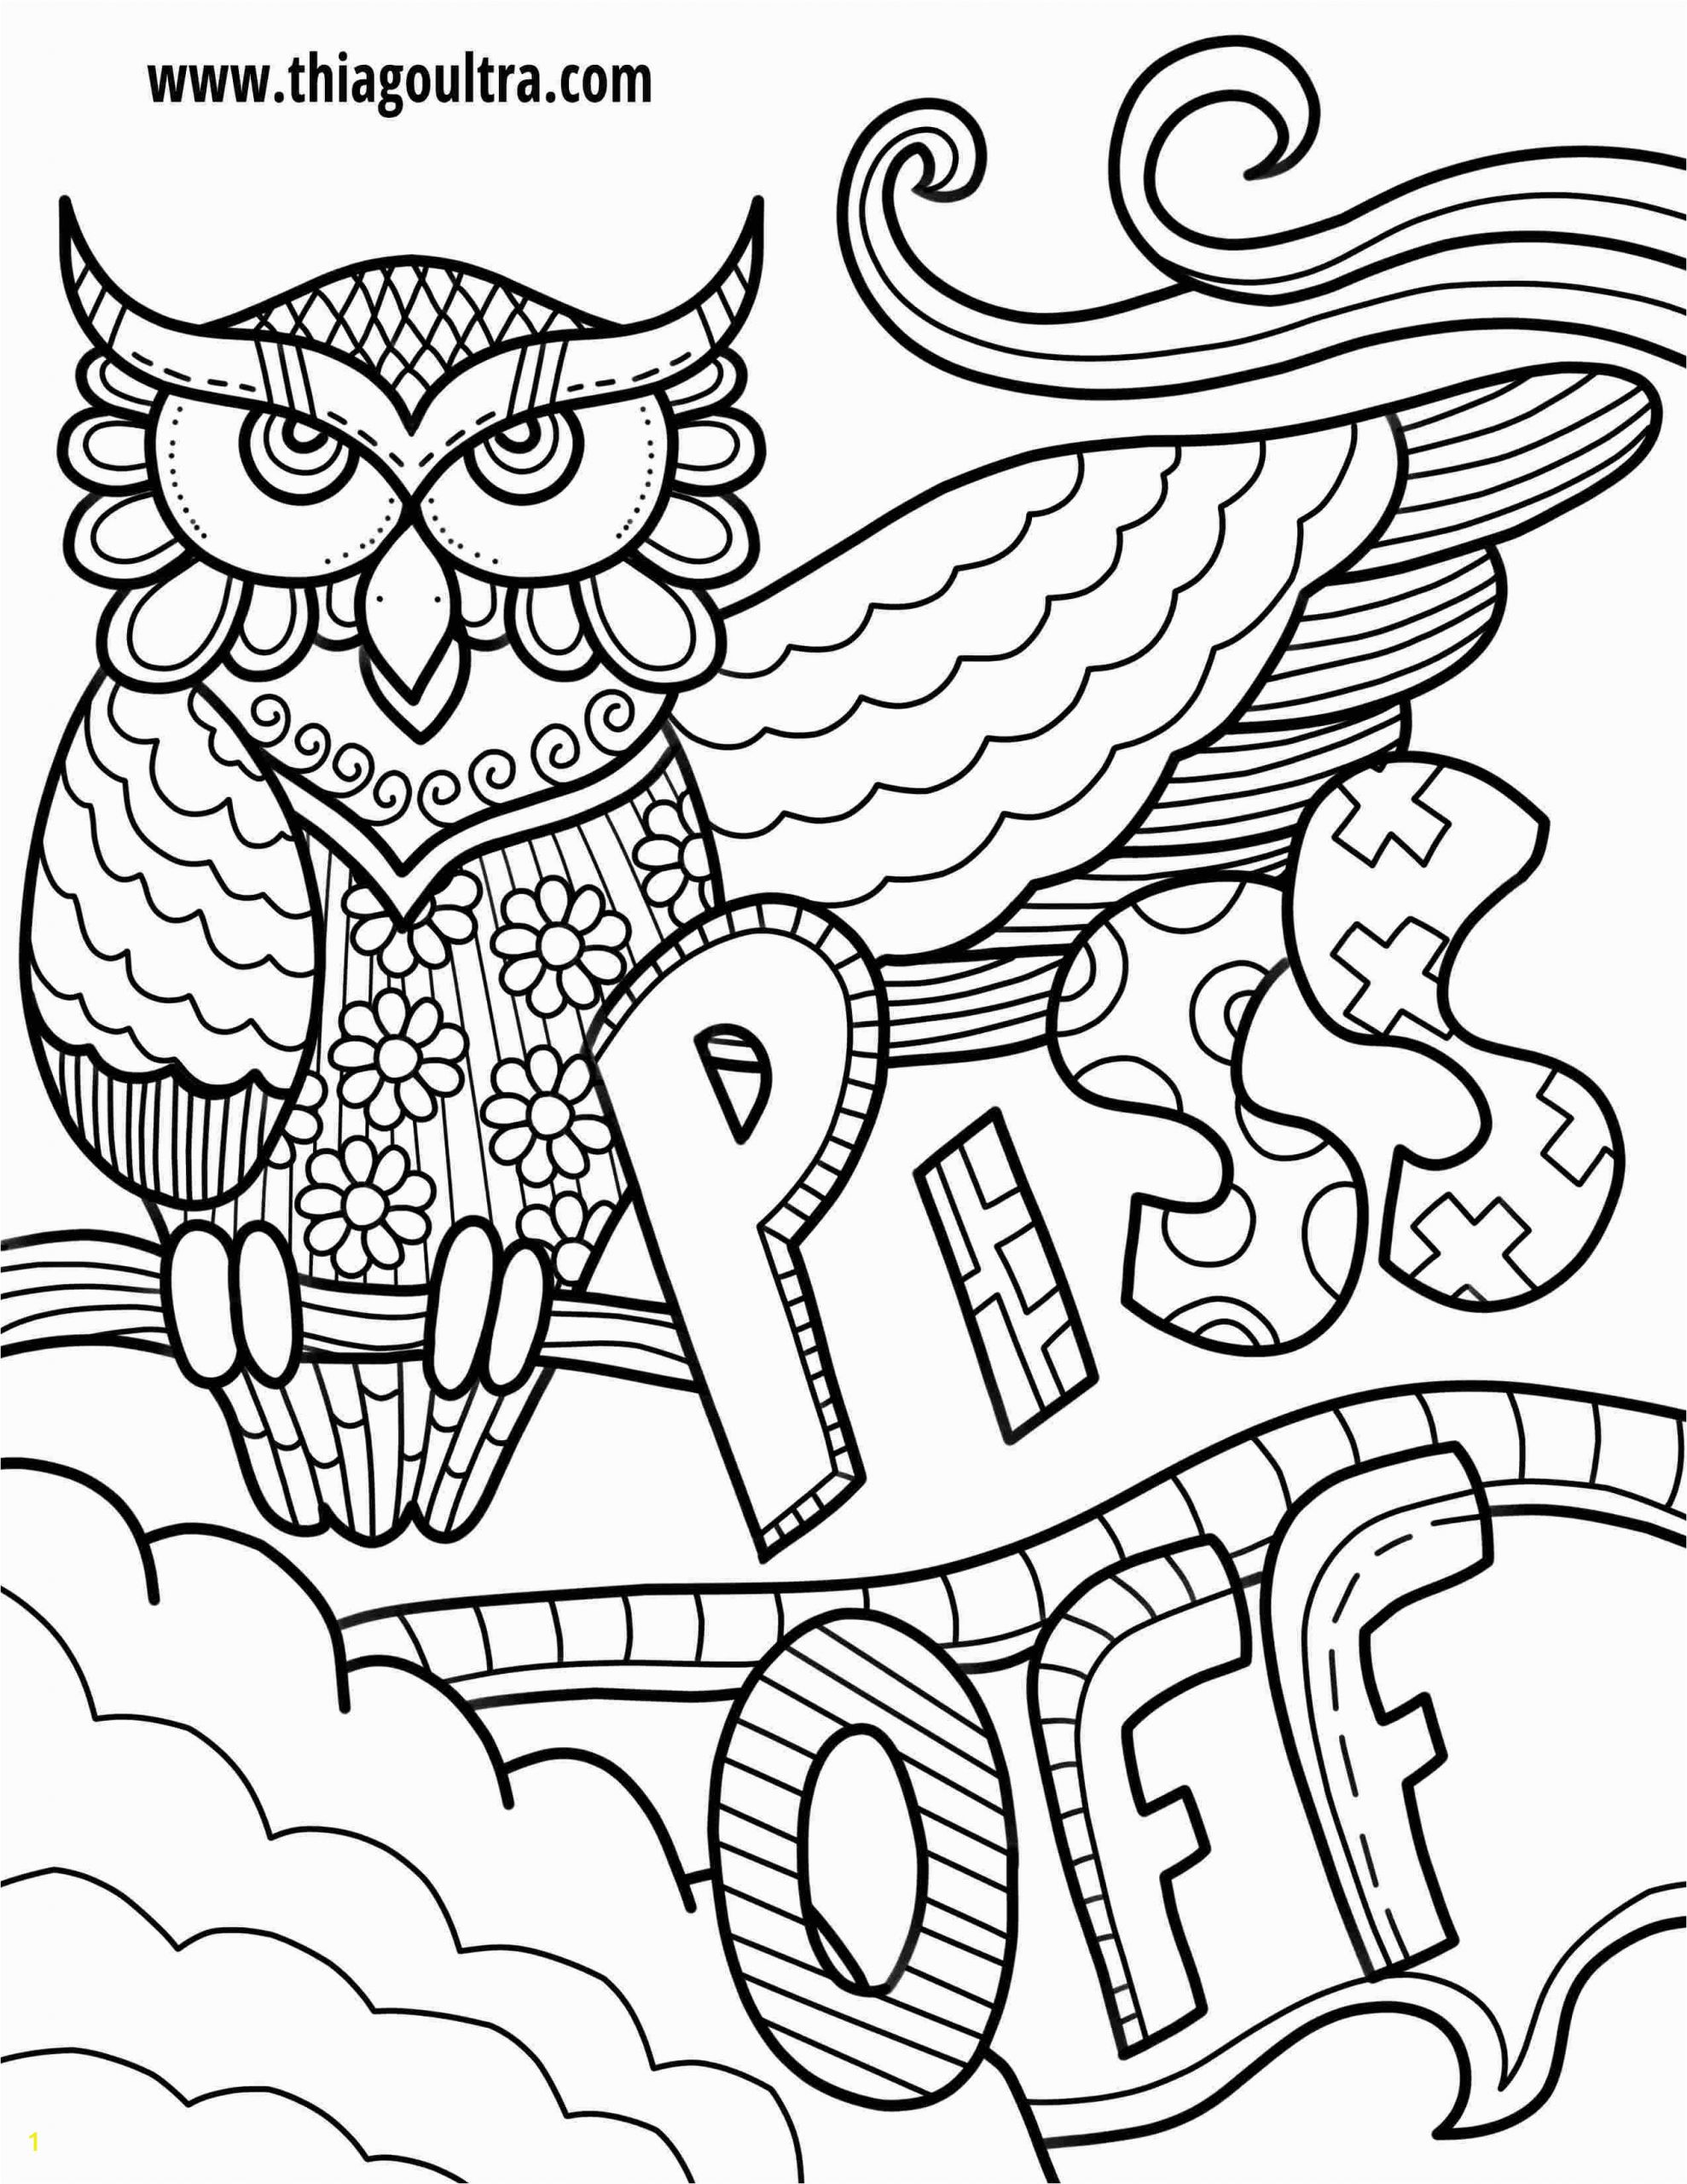 swear words coloring pages free pin by tamie white on swear words adult coloring pages coloring pages swear words free